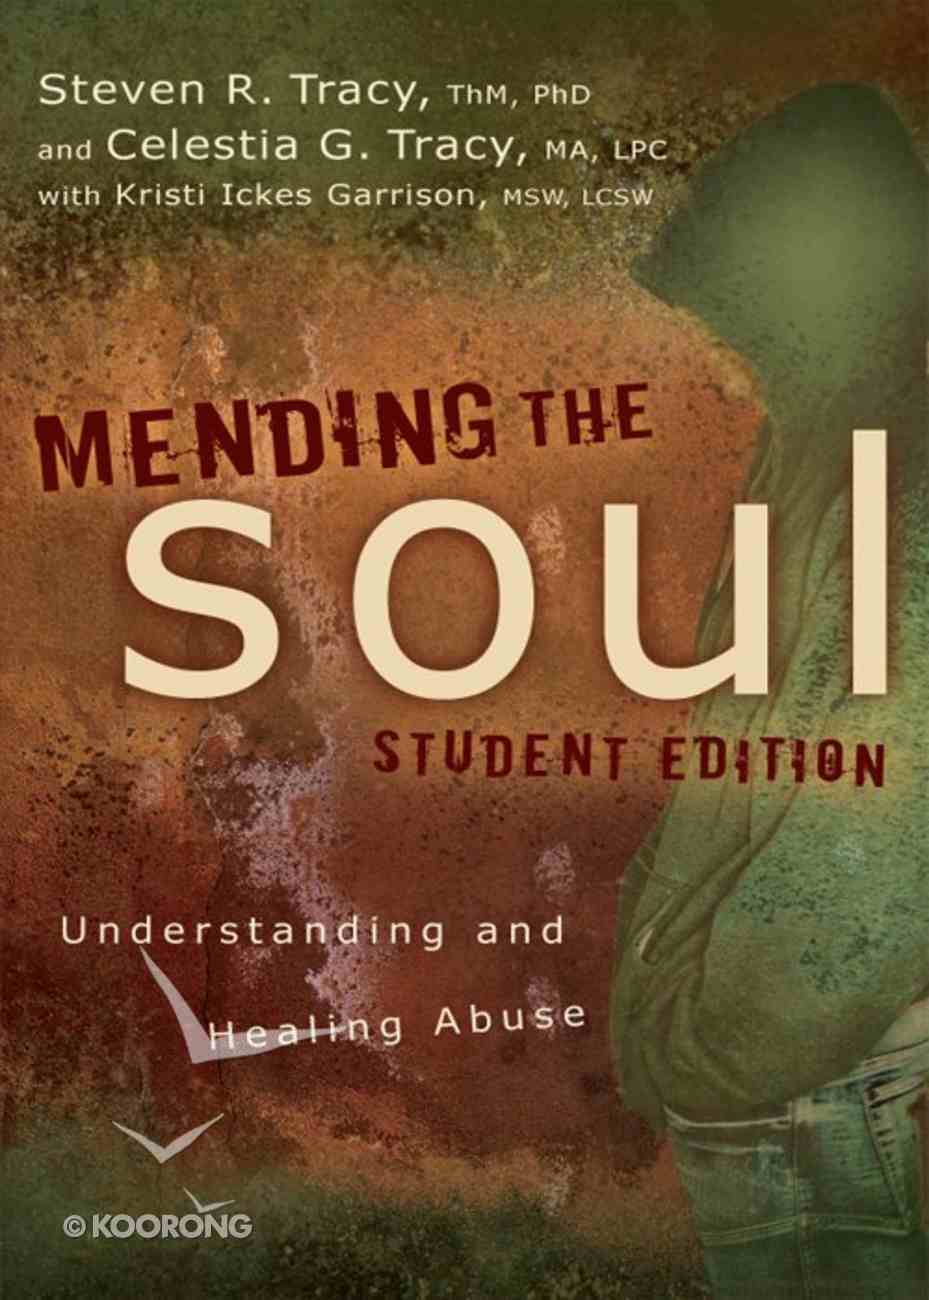 Mending the Soul - Student Edition eBook